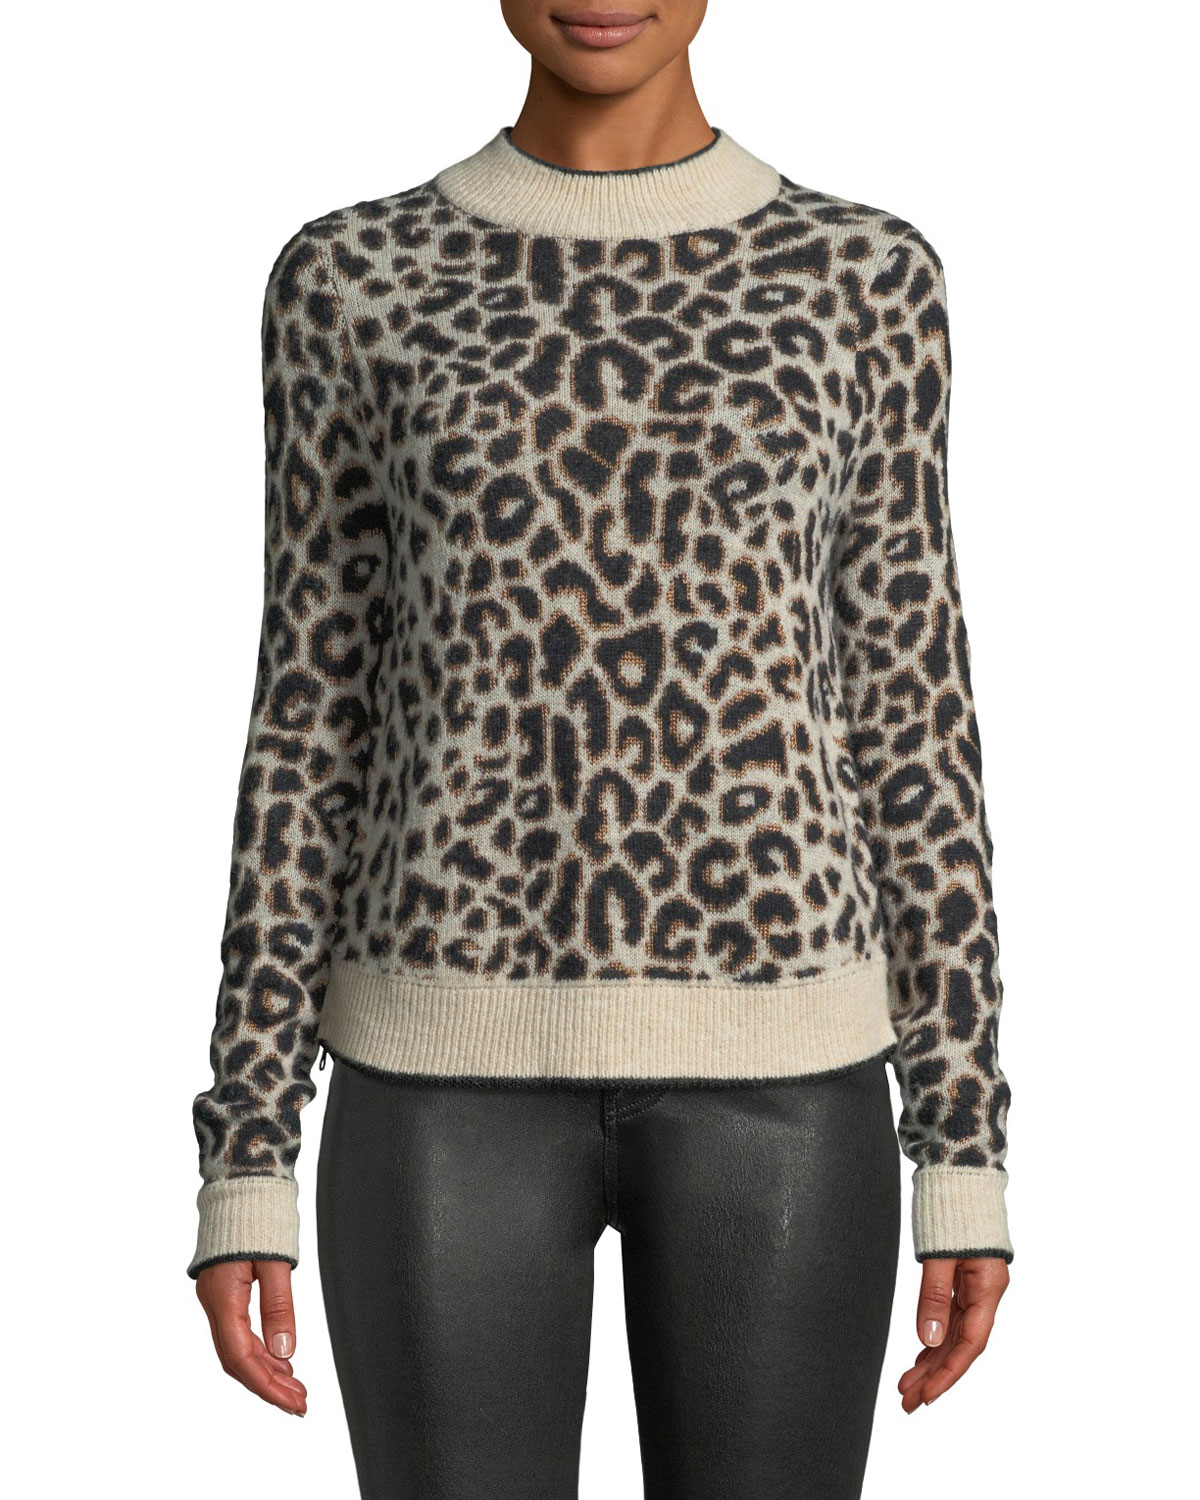 Marly Leopard-Print Crewneck Pullover Sweater, Brown Pattern